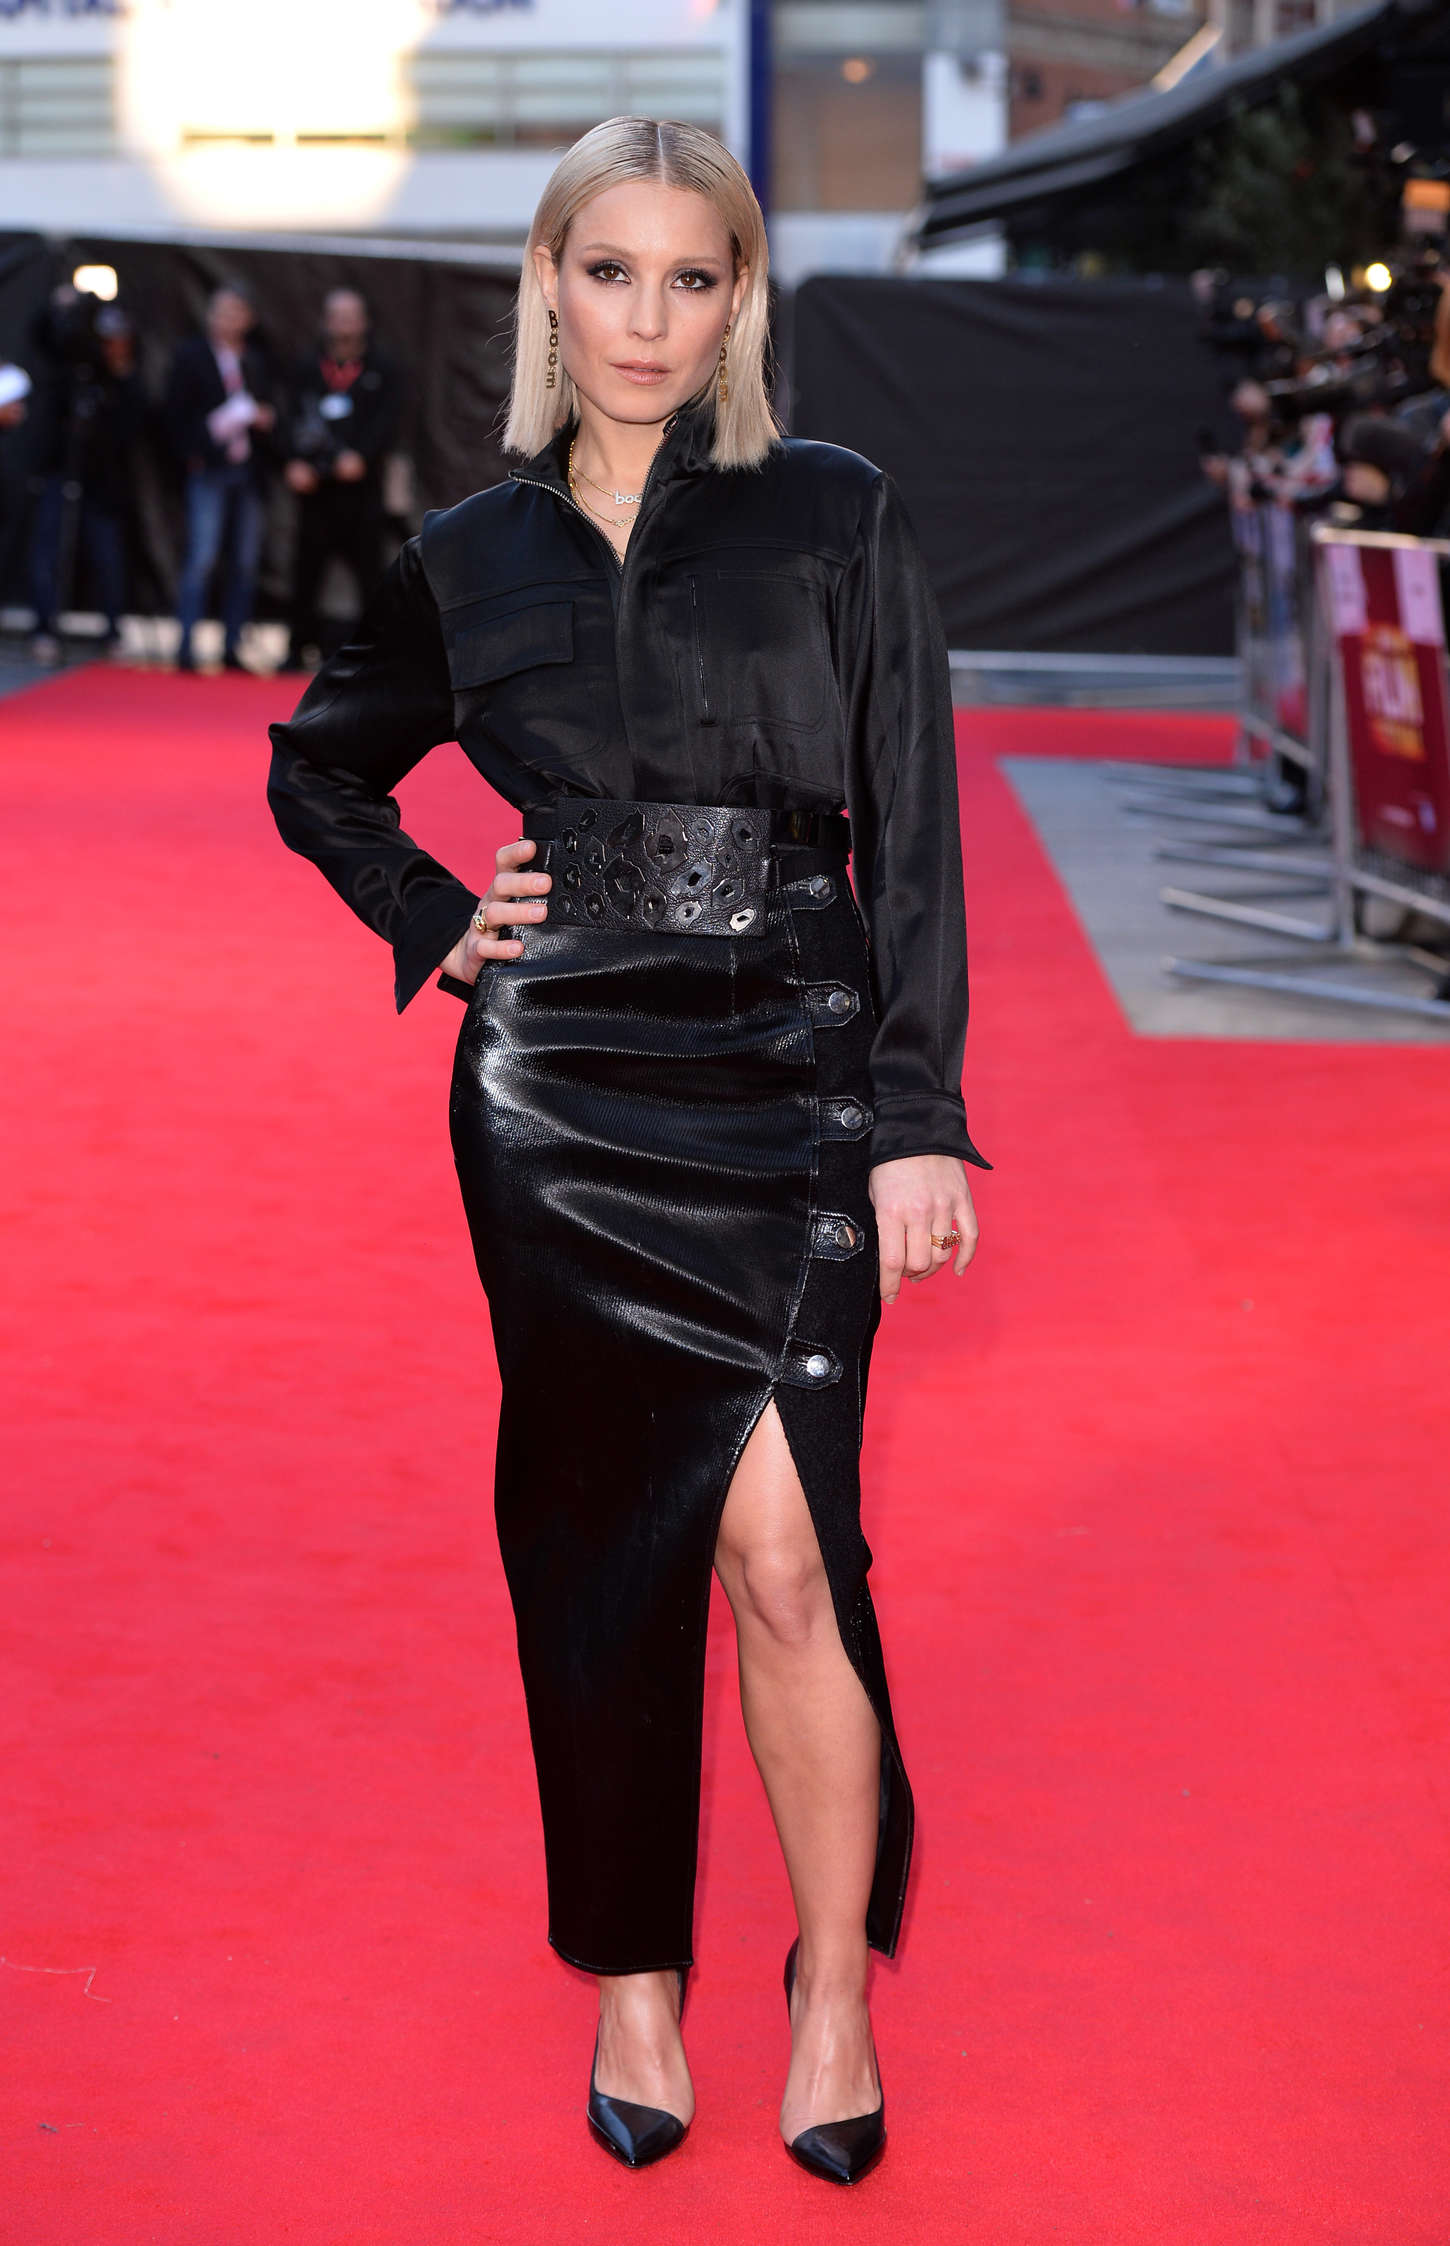 Noomi Rapace at Premiere The Drop in London